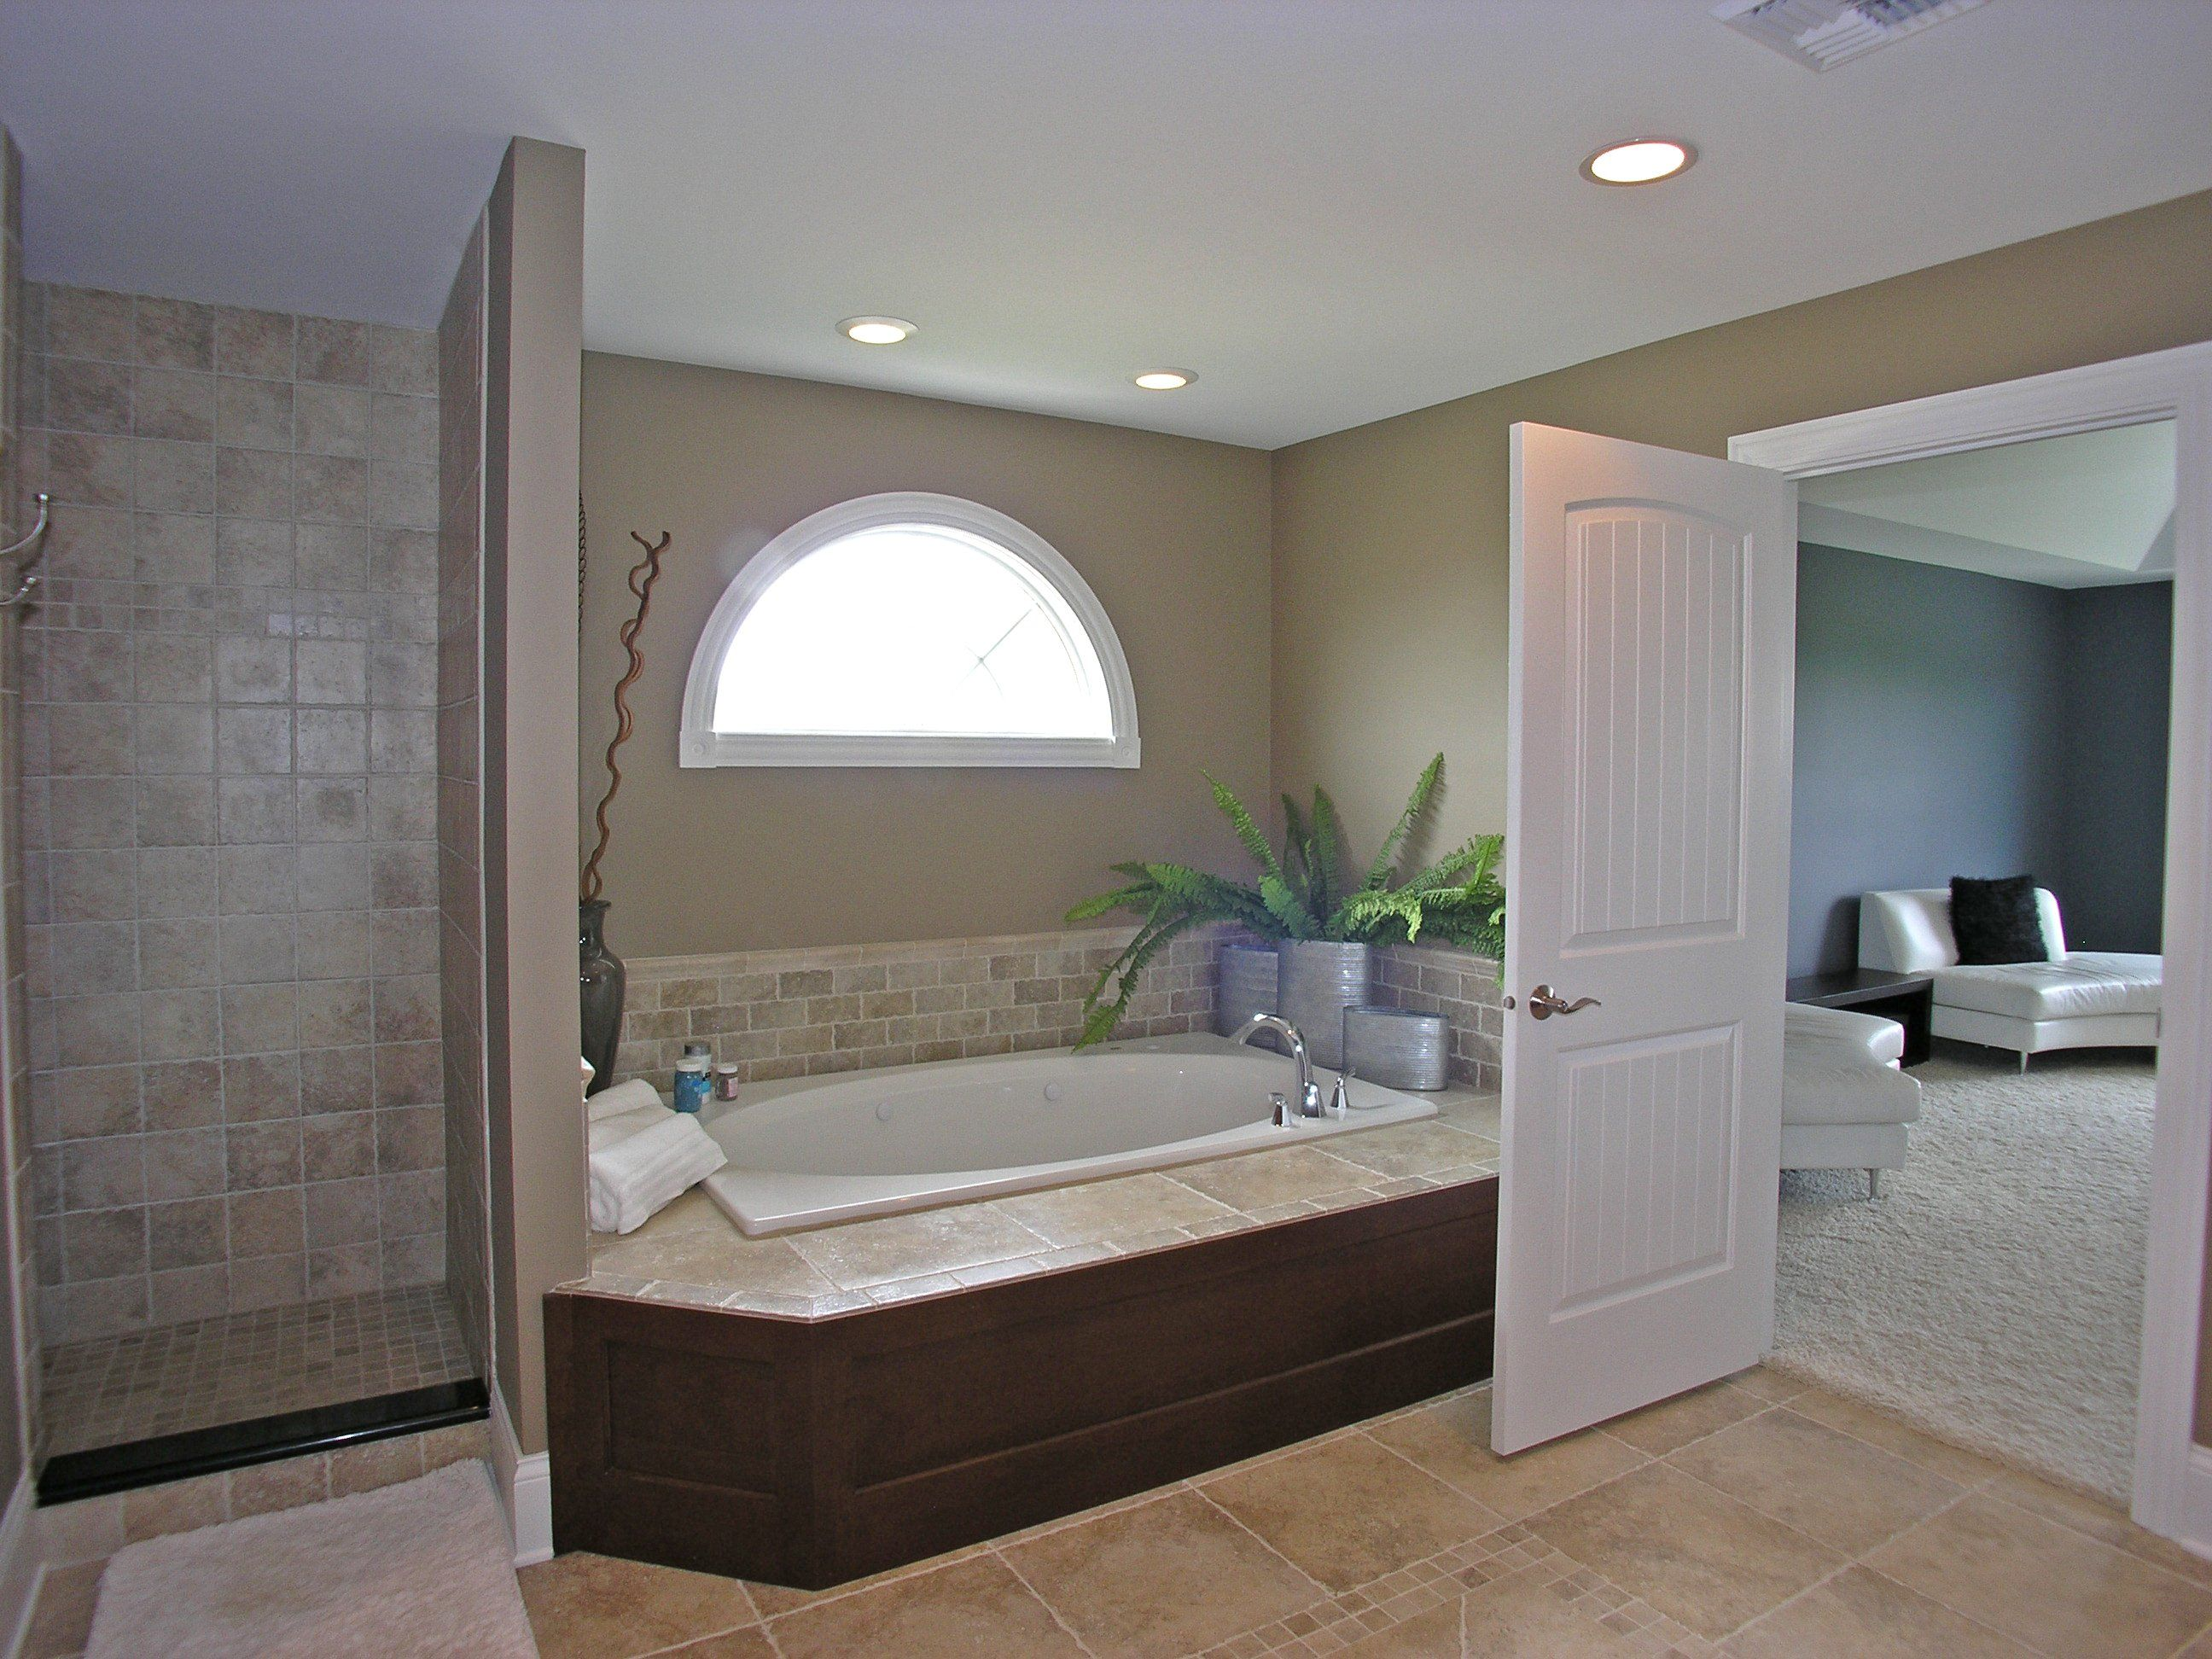 Master bath with whirlpool tub and separate shower stall | Master ...